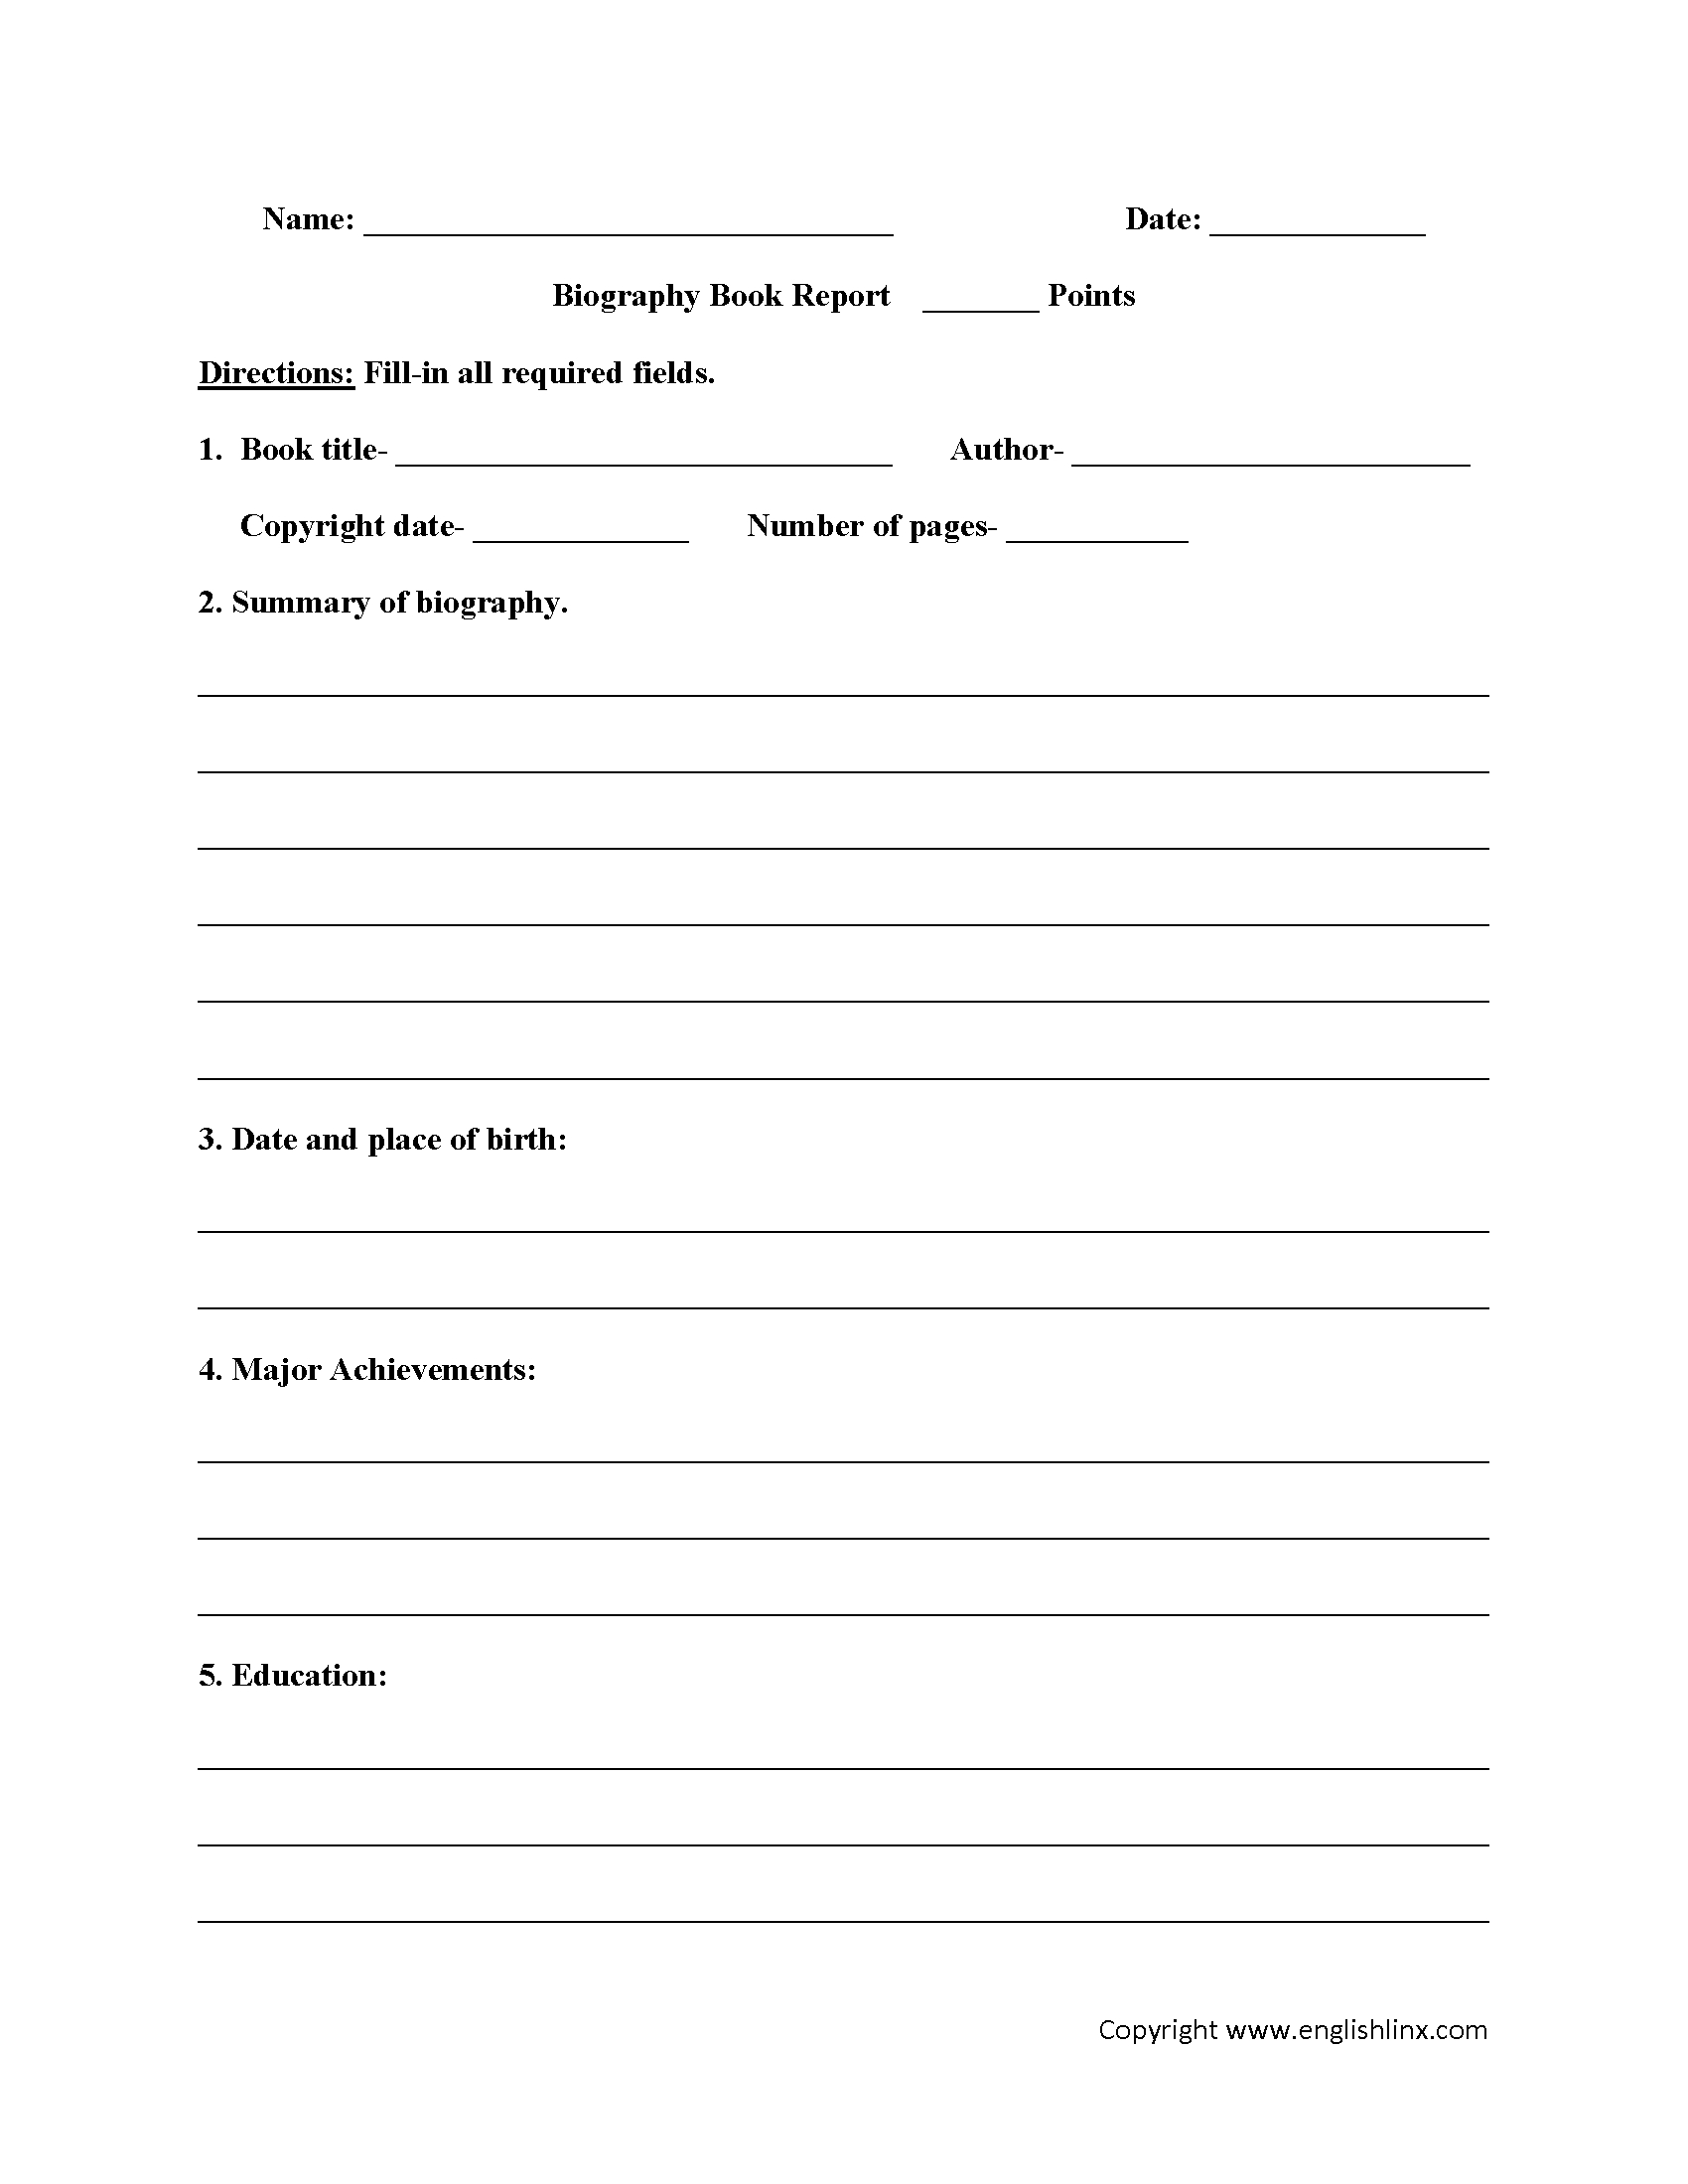 Englishlinx | Book Report Worksheets | Book Report Printable Worksheets